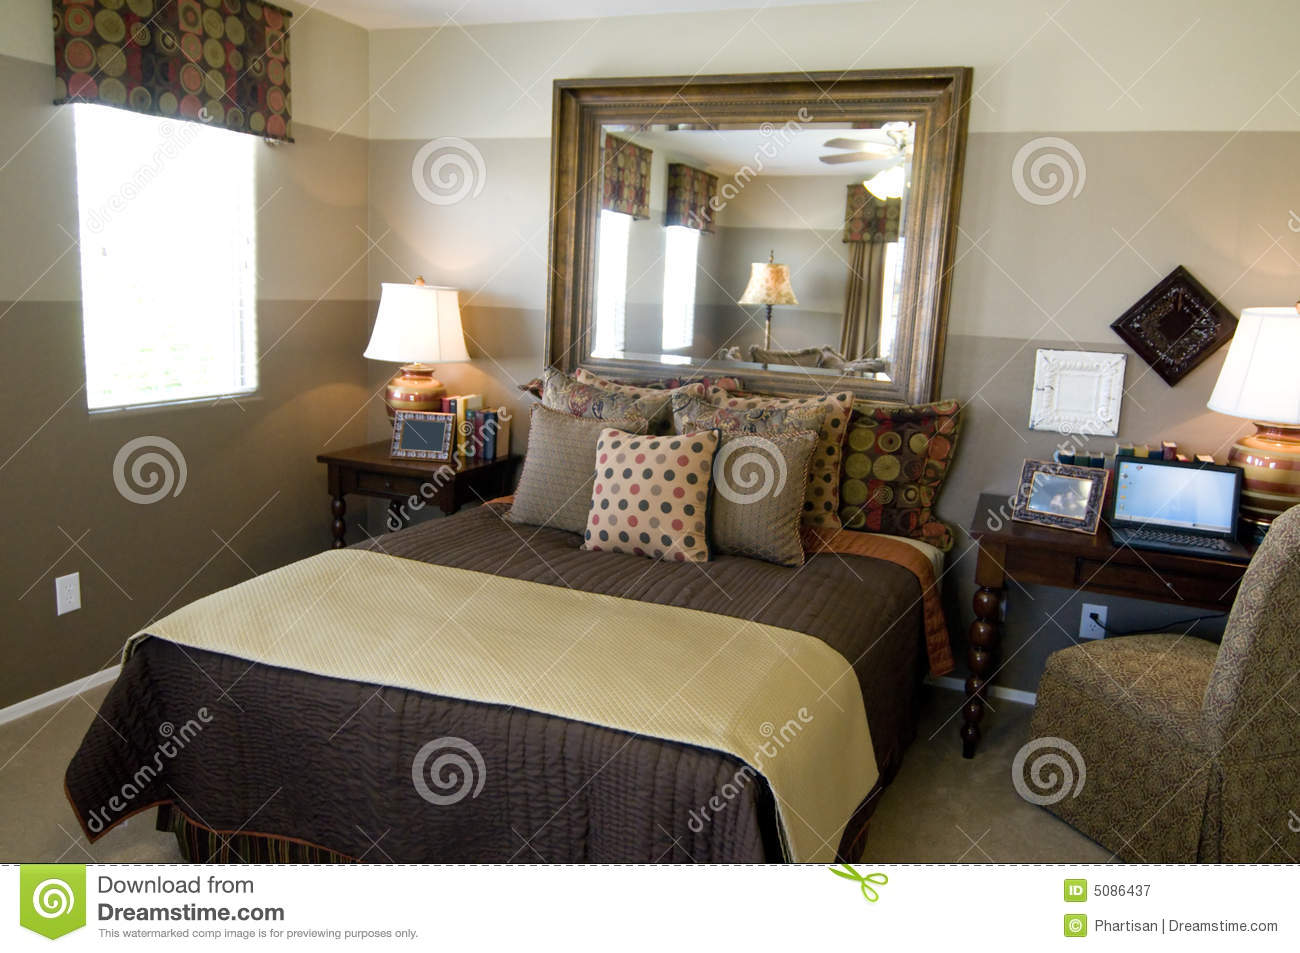 Beautiful showcase bedroom interior stock image image for Beautiful bedroom interior